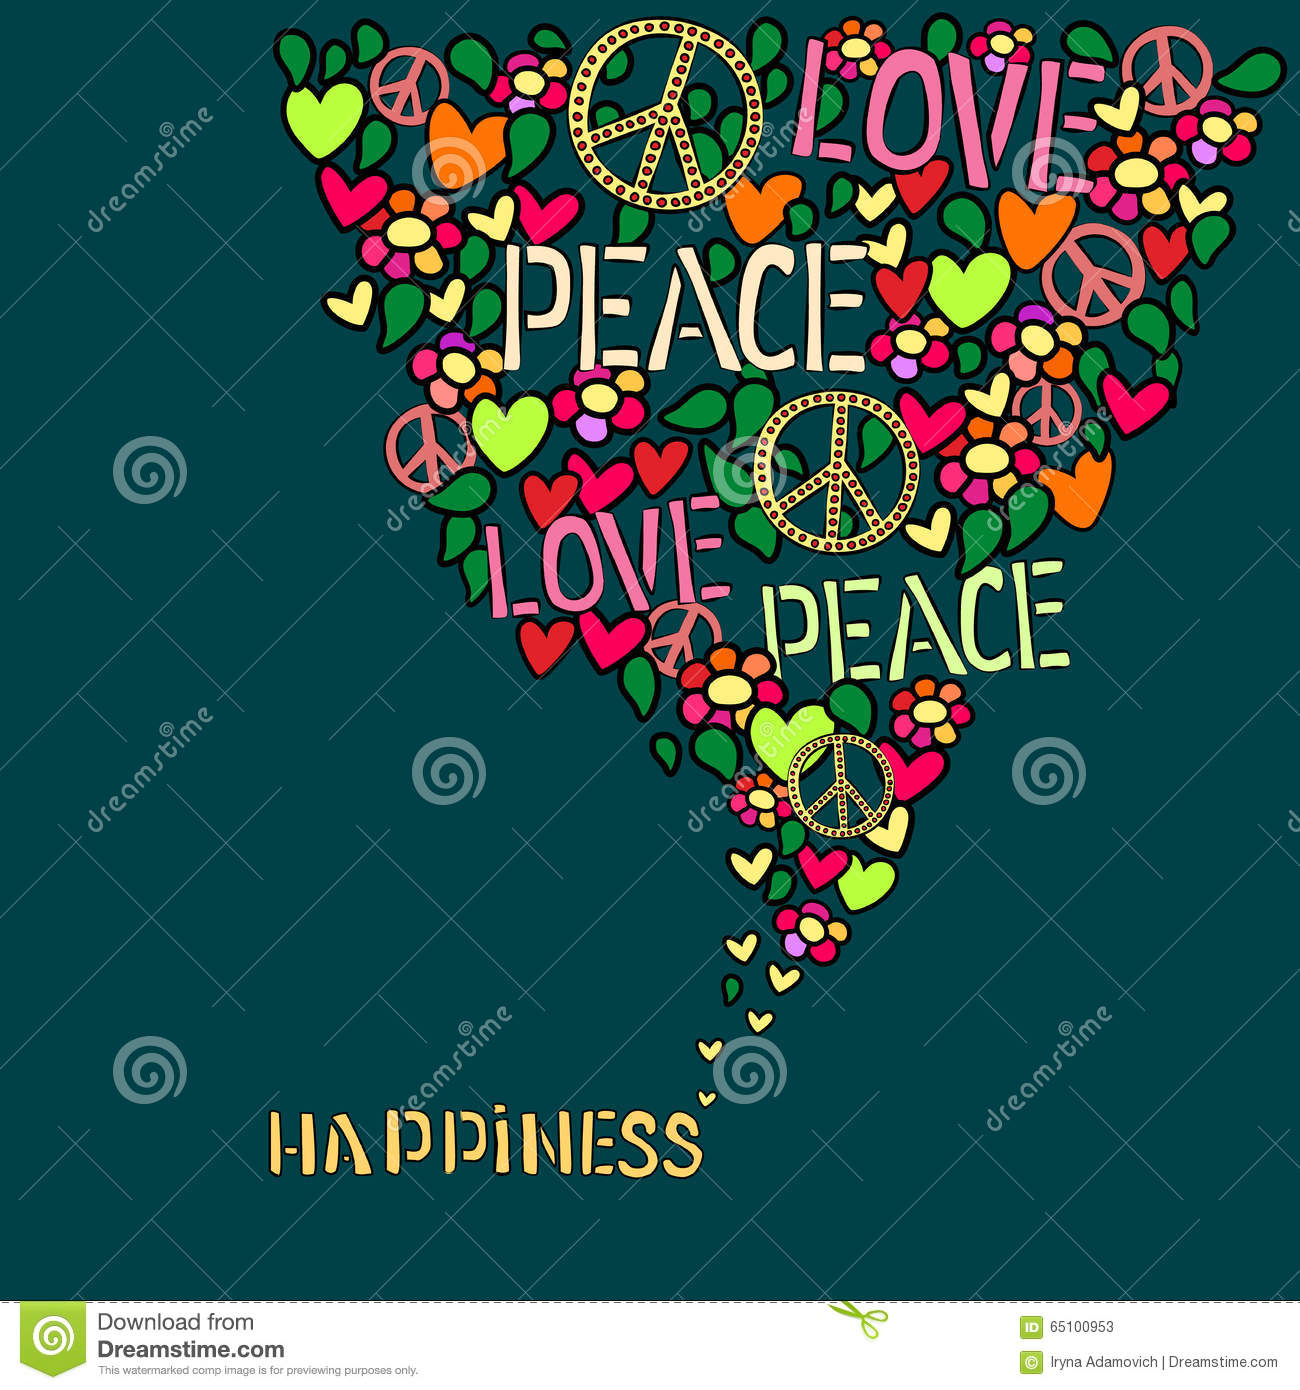 Text happiness love peace and pacifism symbol in colorful collage text happiness love peace and pacifism symbol in colorful collage biocorpaavc Image collections